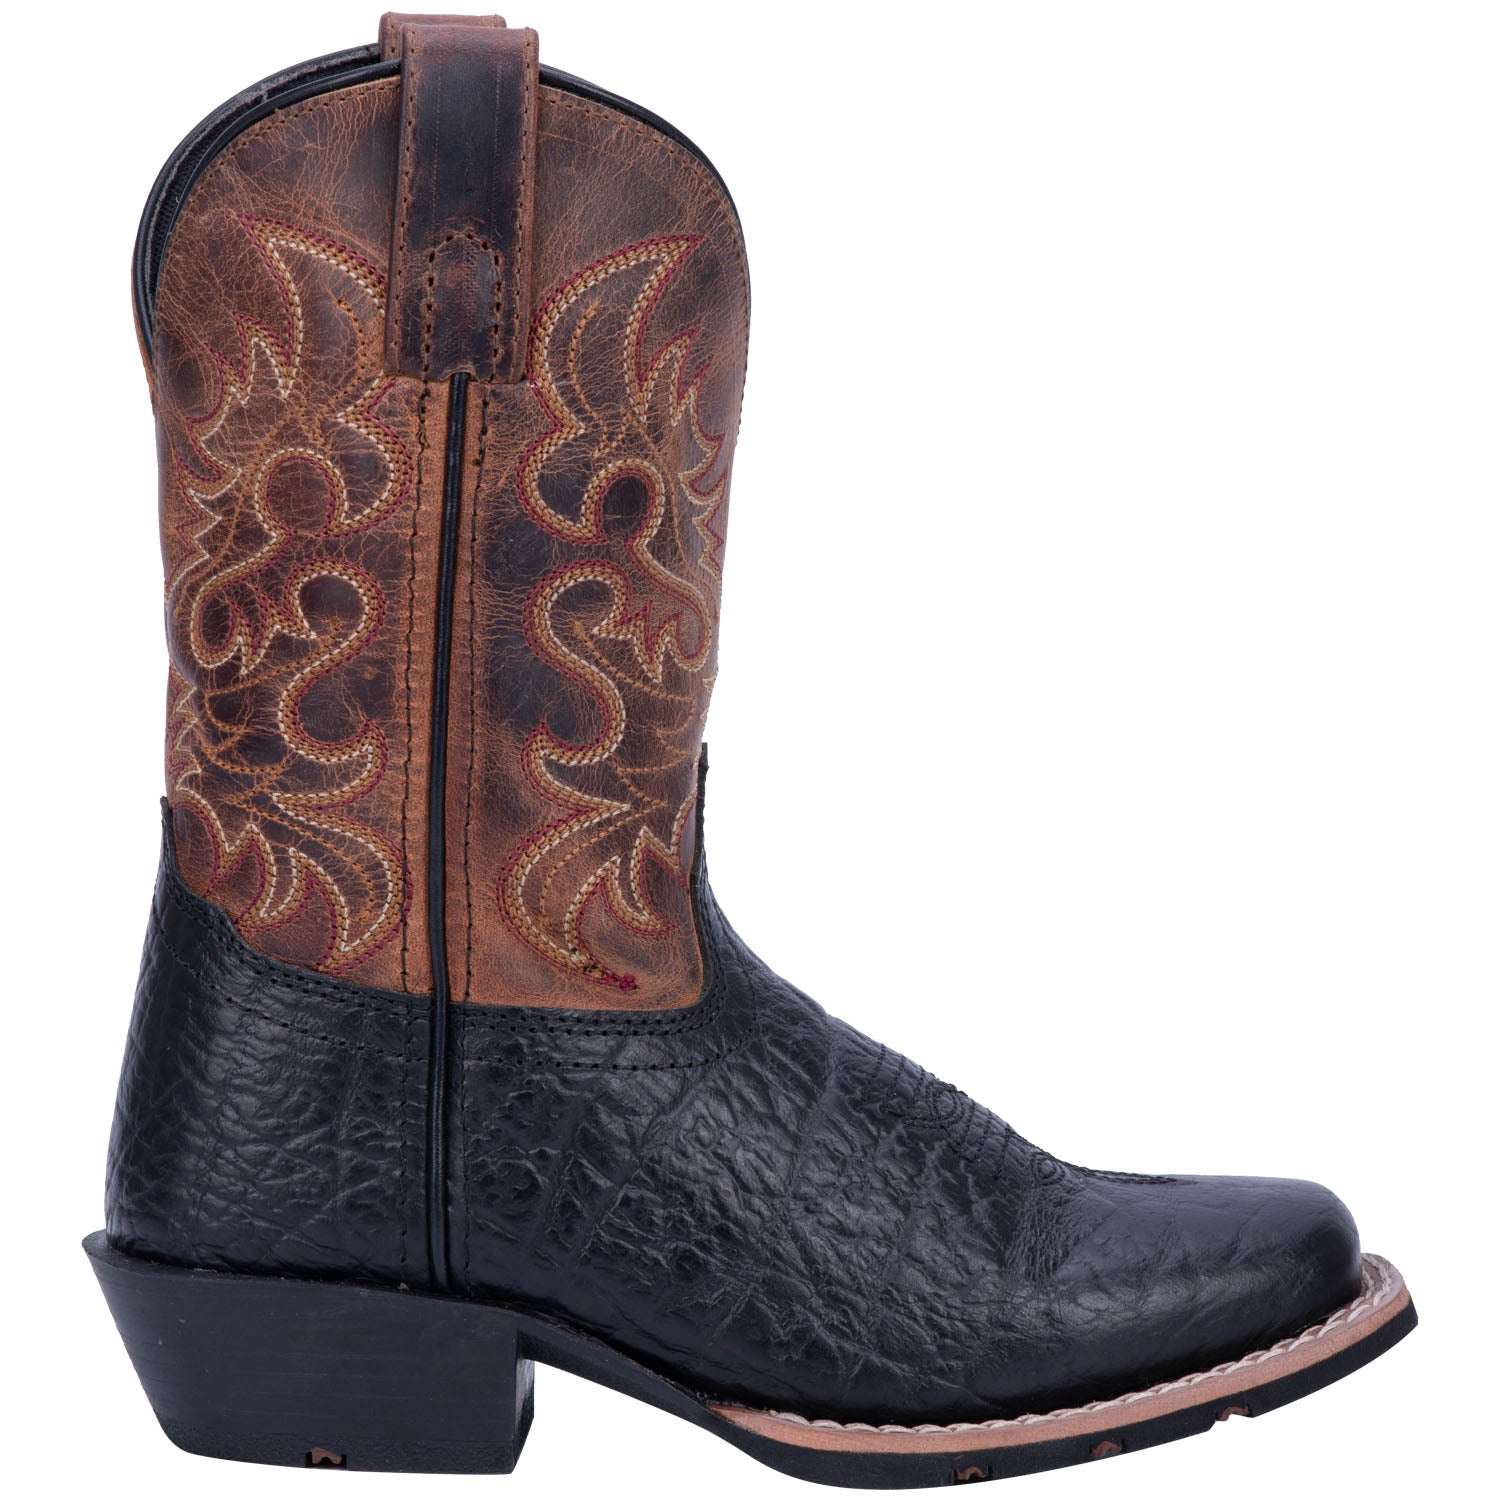 LITTLE RIVER LEATHER CHILDREN'S BOOT 4253840343082